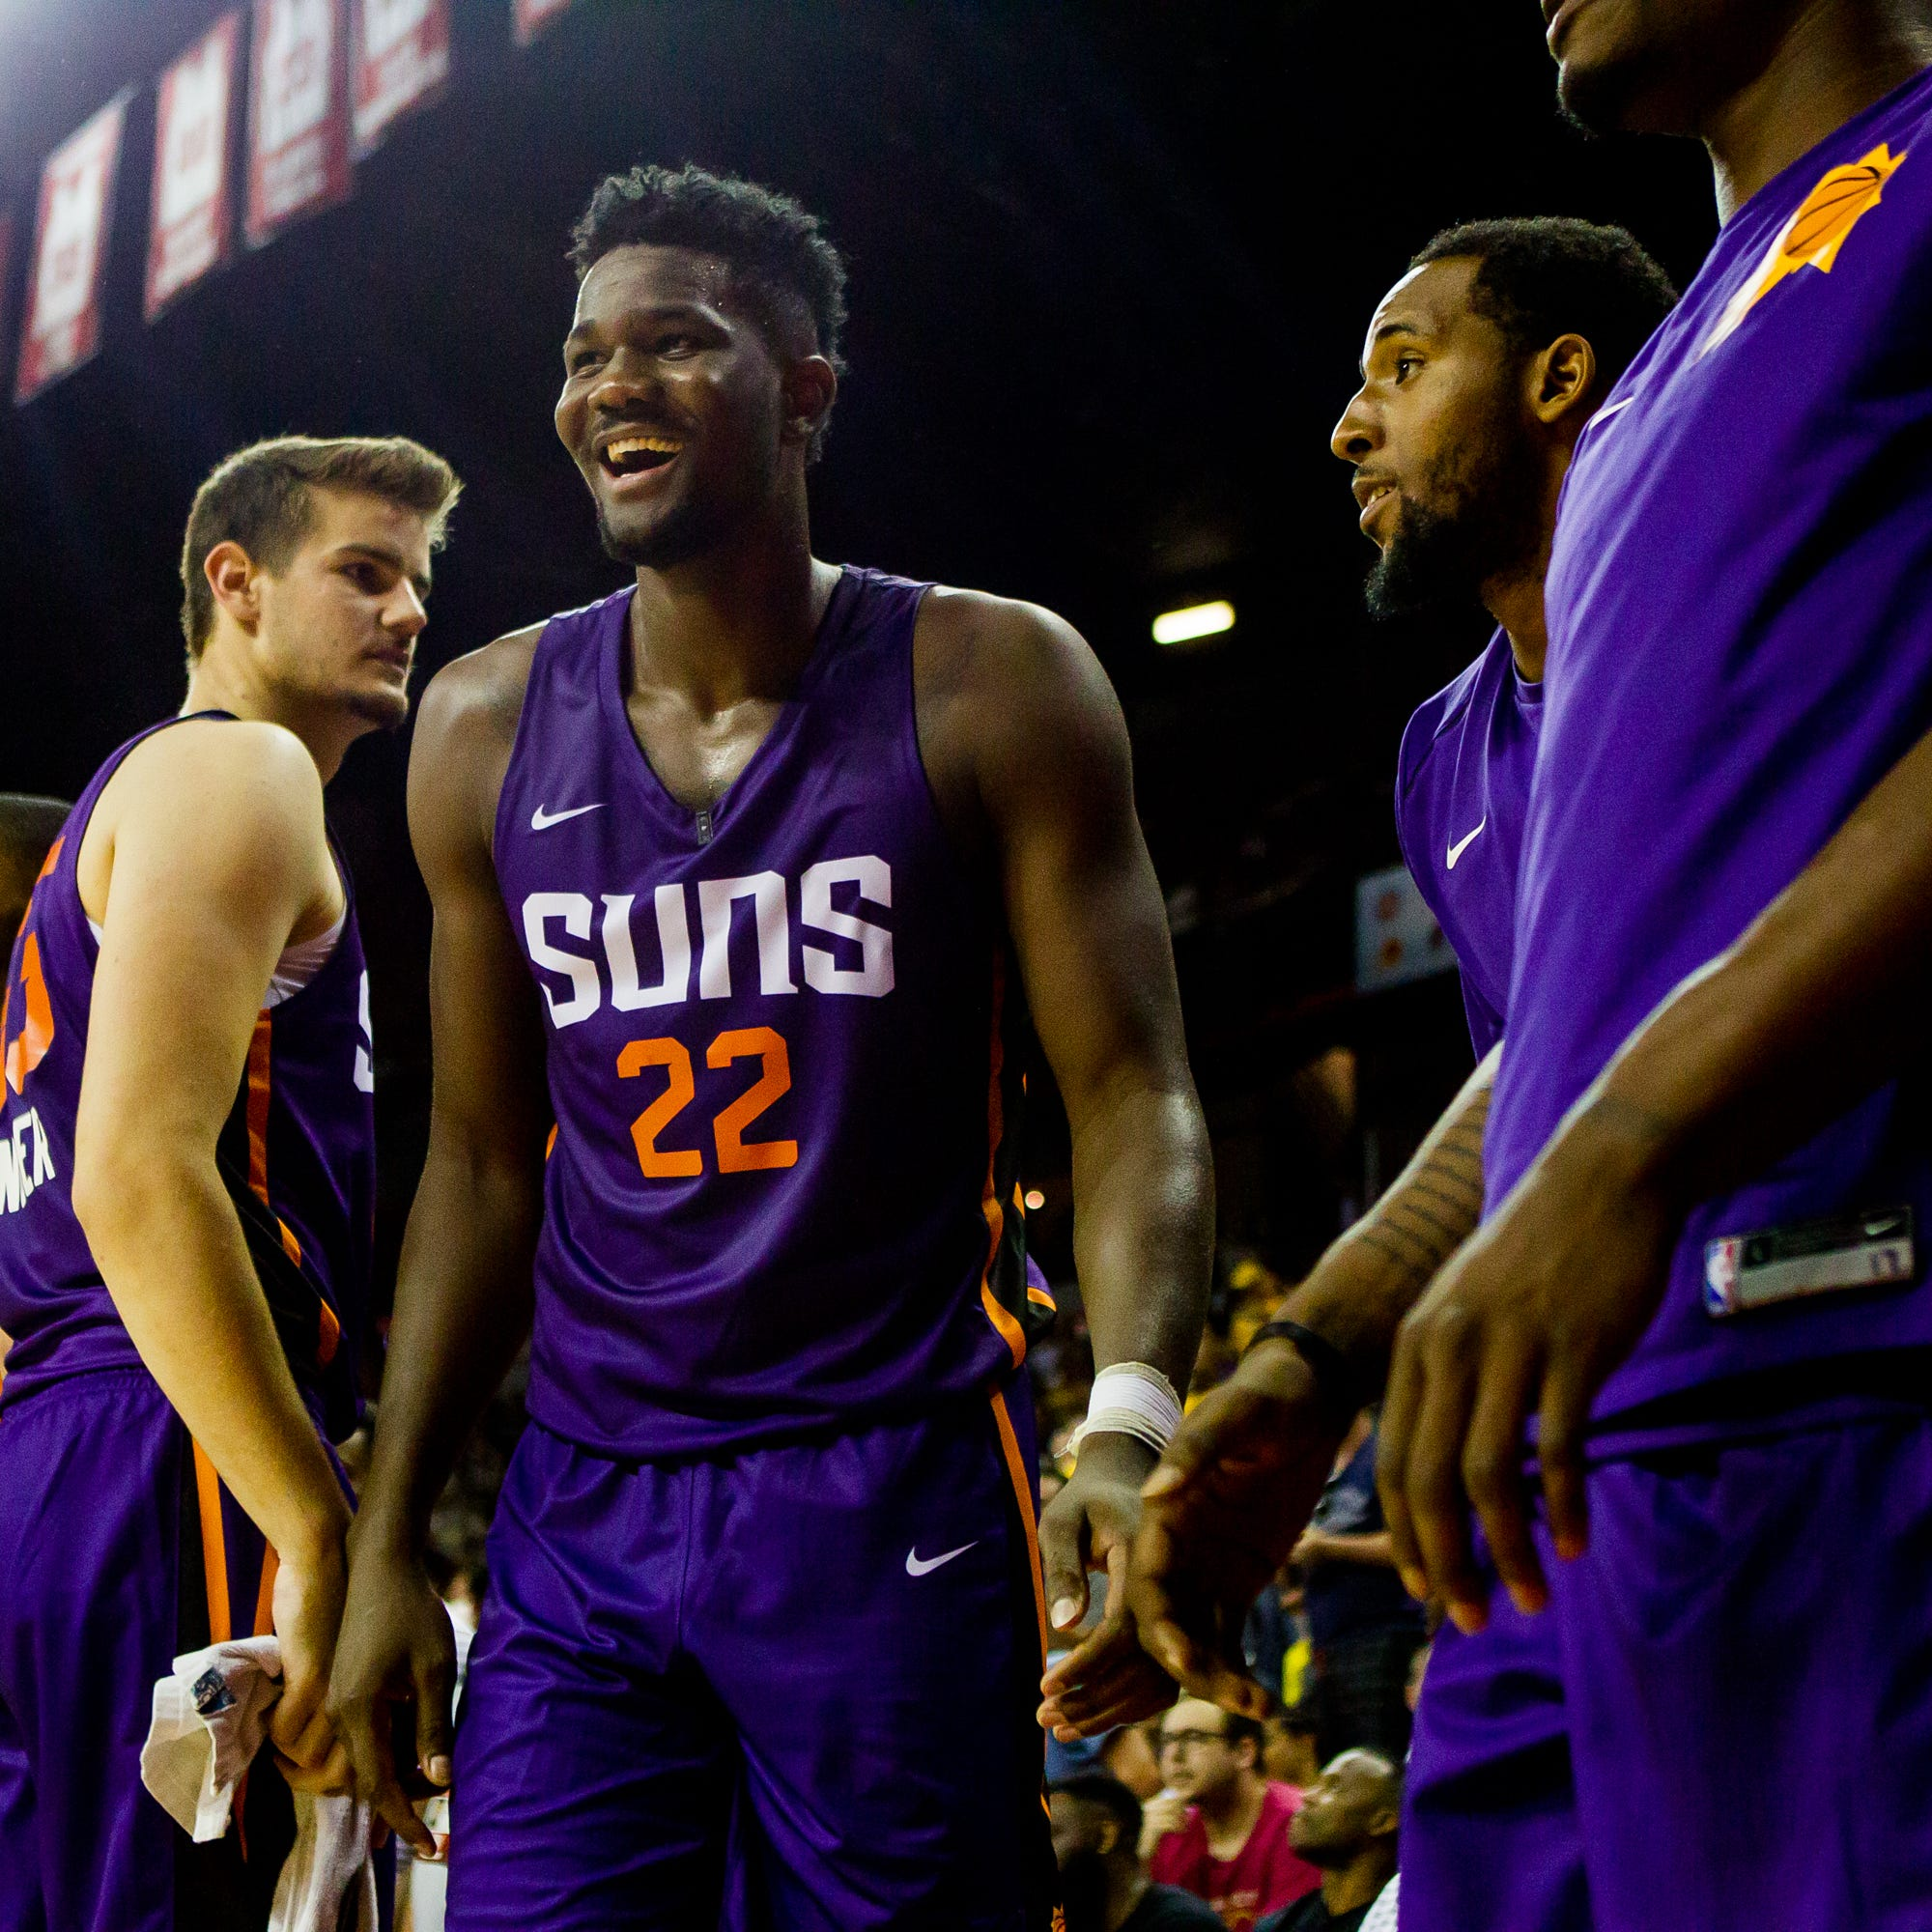 Suns rookie Deandre Ayton drew himself dunking on Joel Embiid